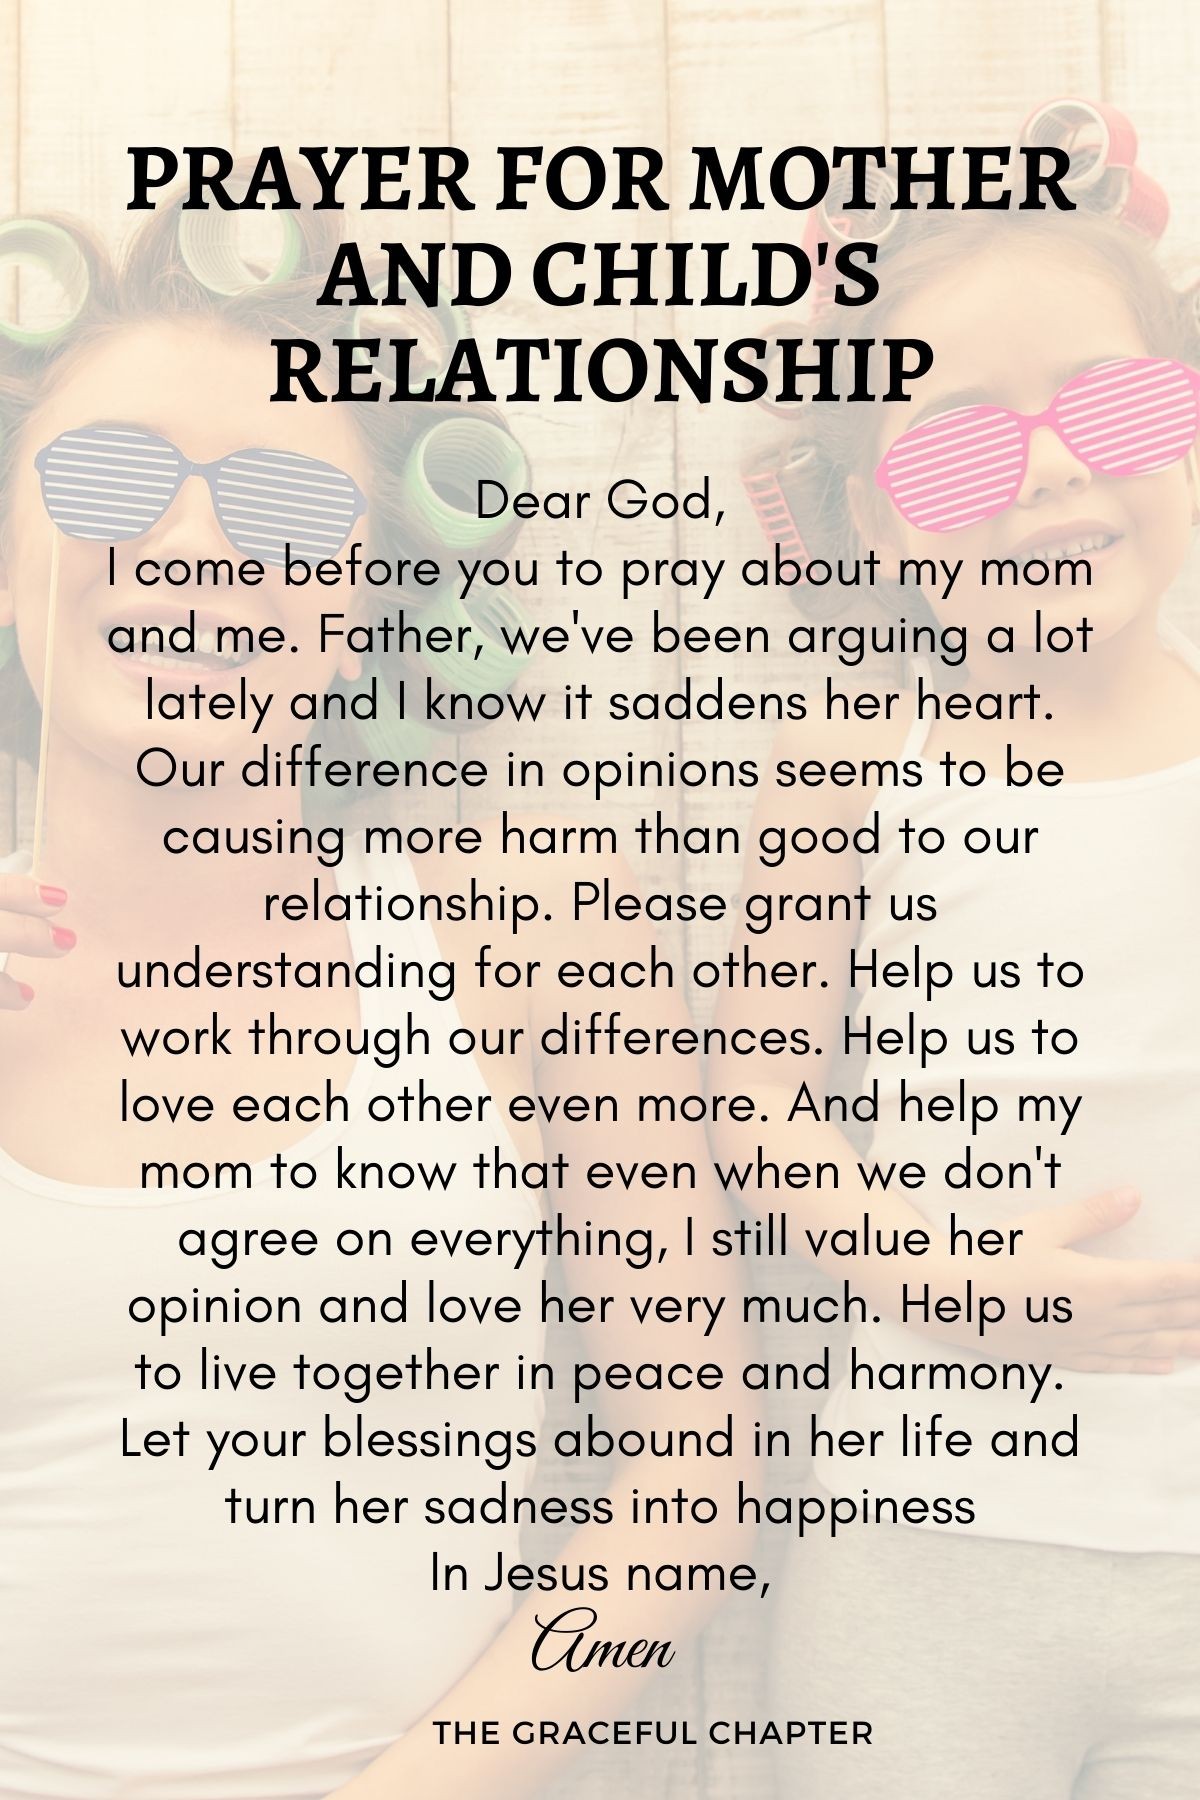 Prayer for mother and child's relationship